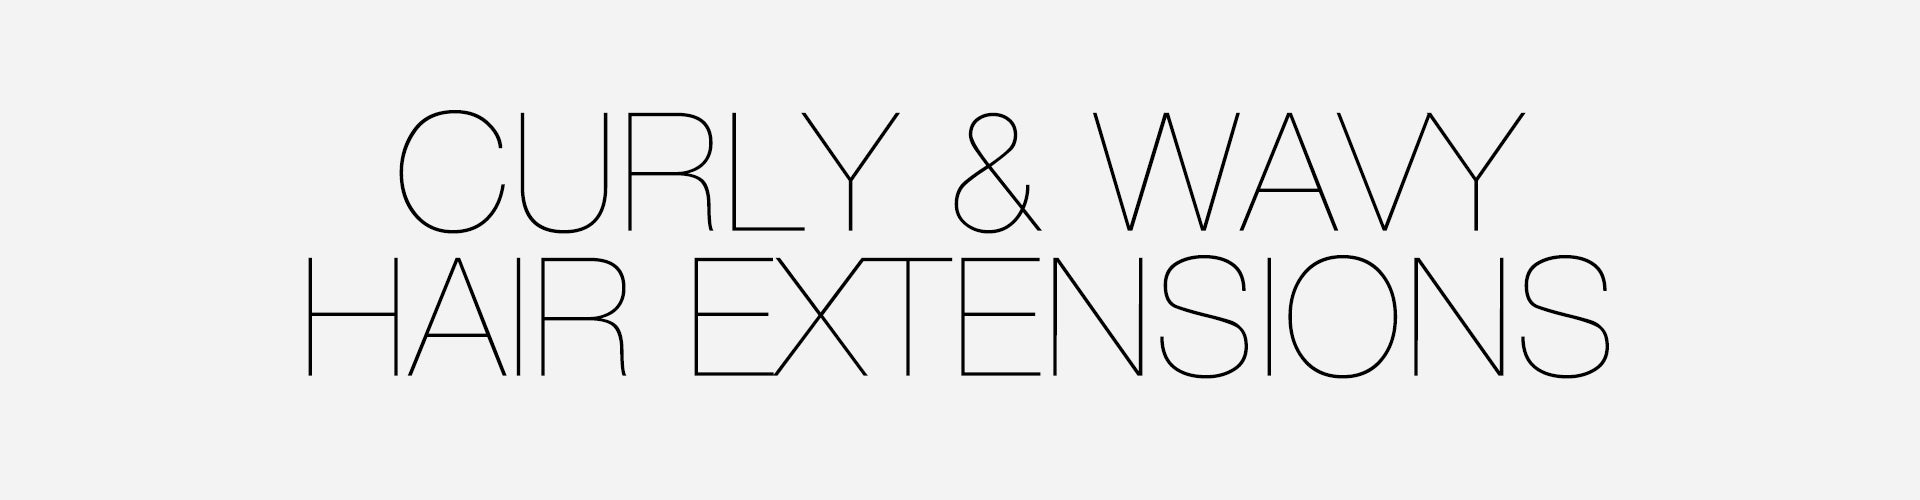 Curly & Wavy Hair Extensions | Shop online @ Wigs.com